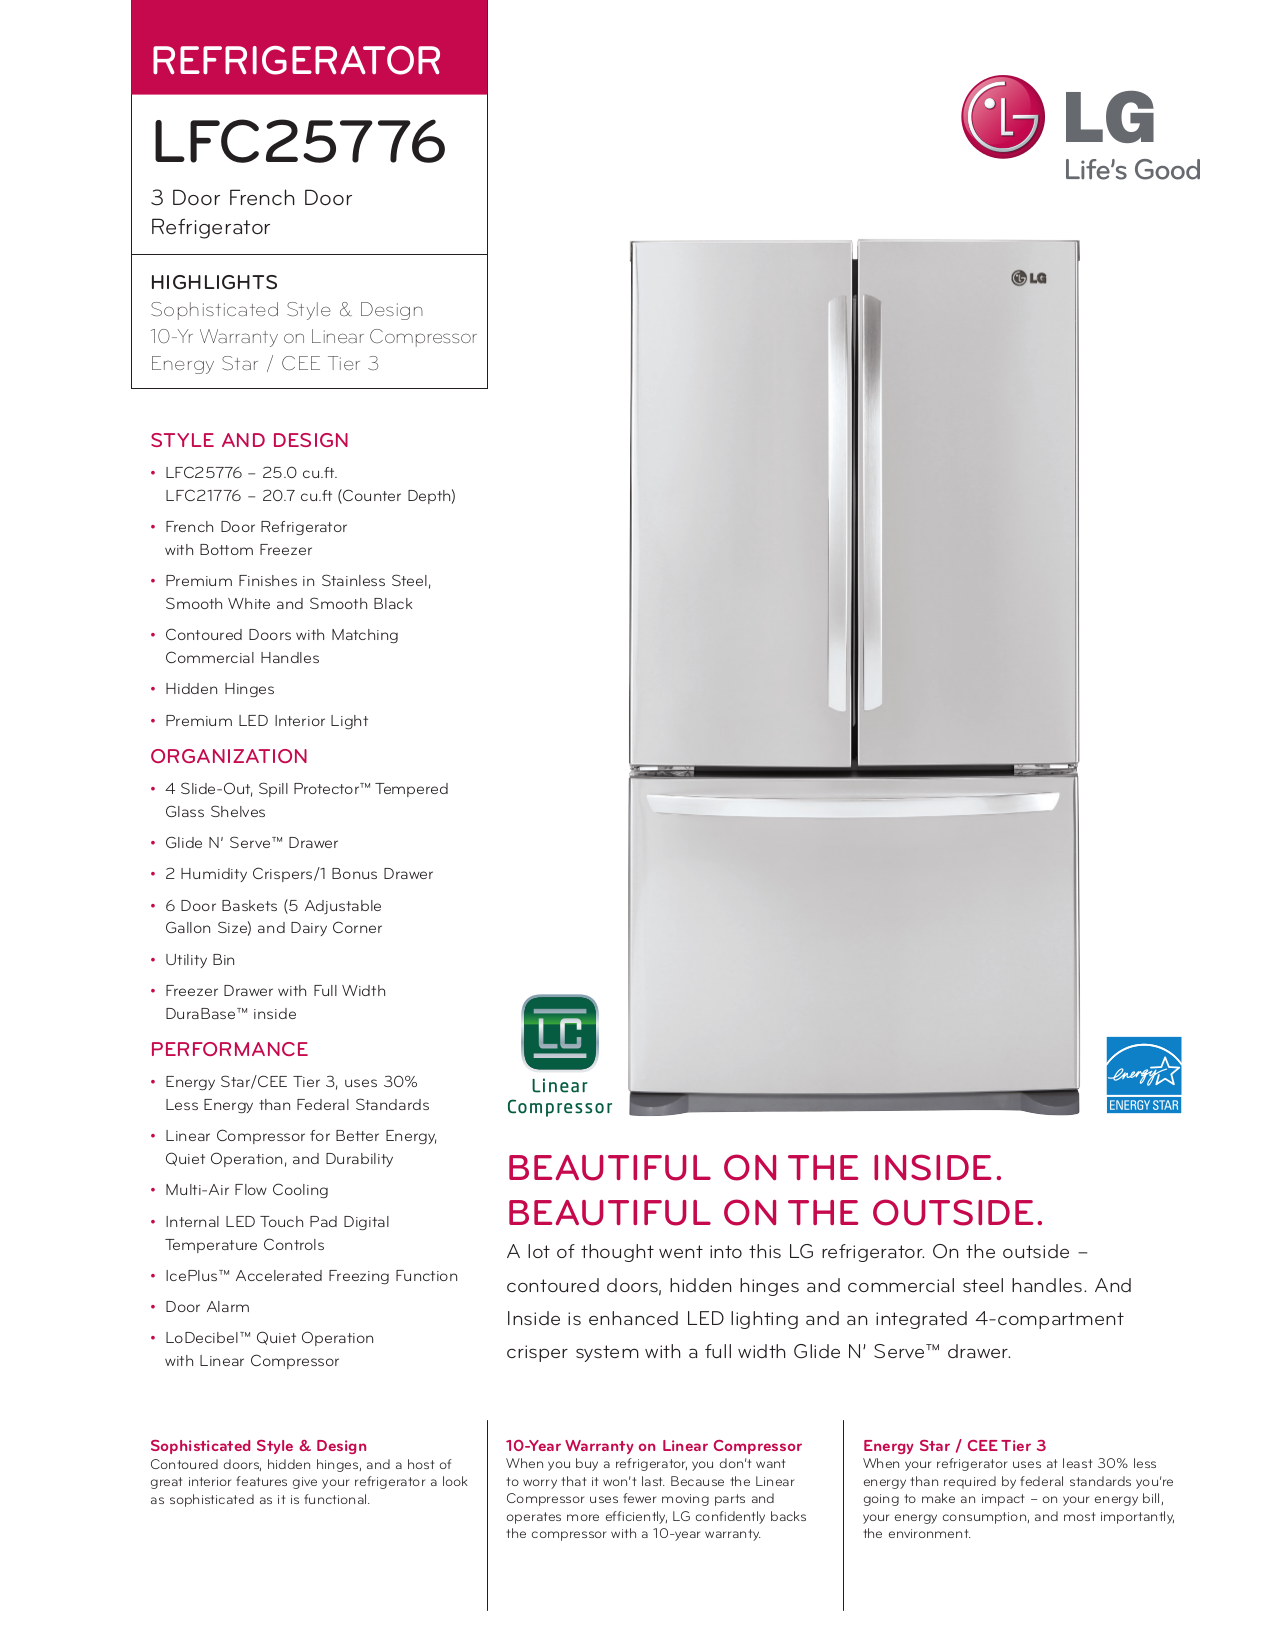 pdf for LG Refrigerator LFC25776 manual